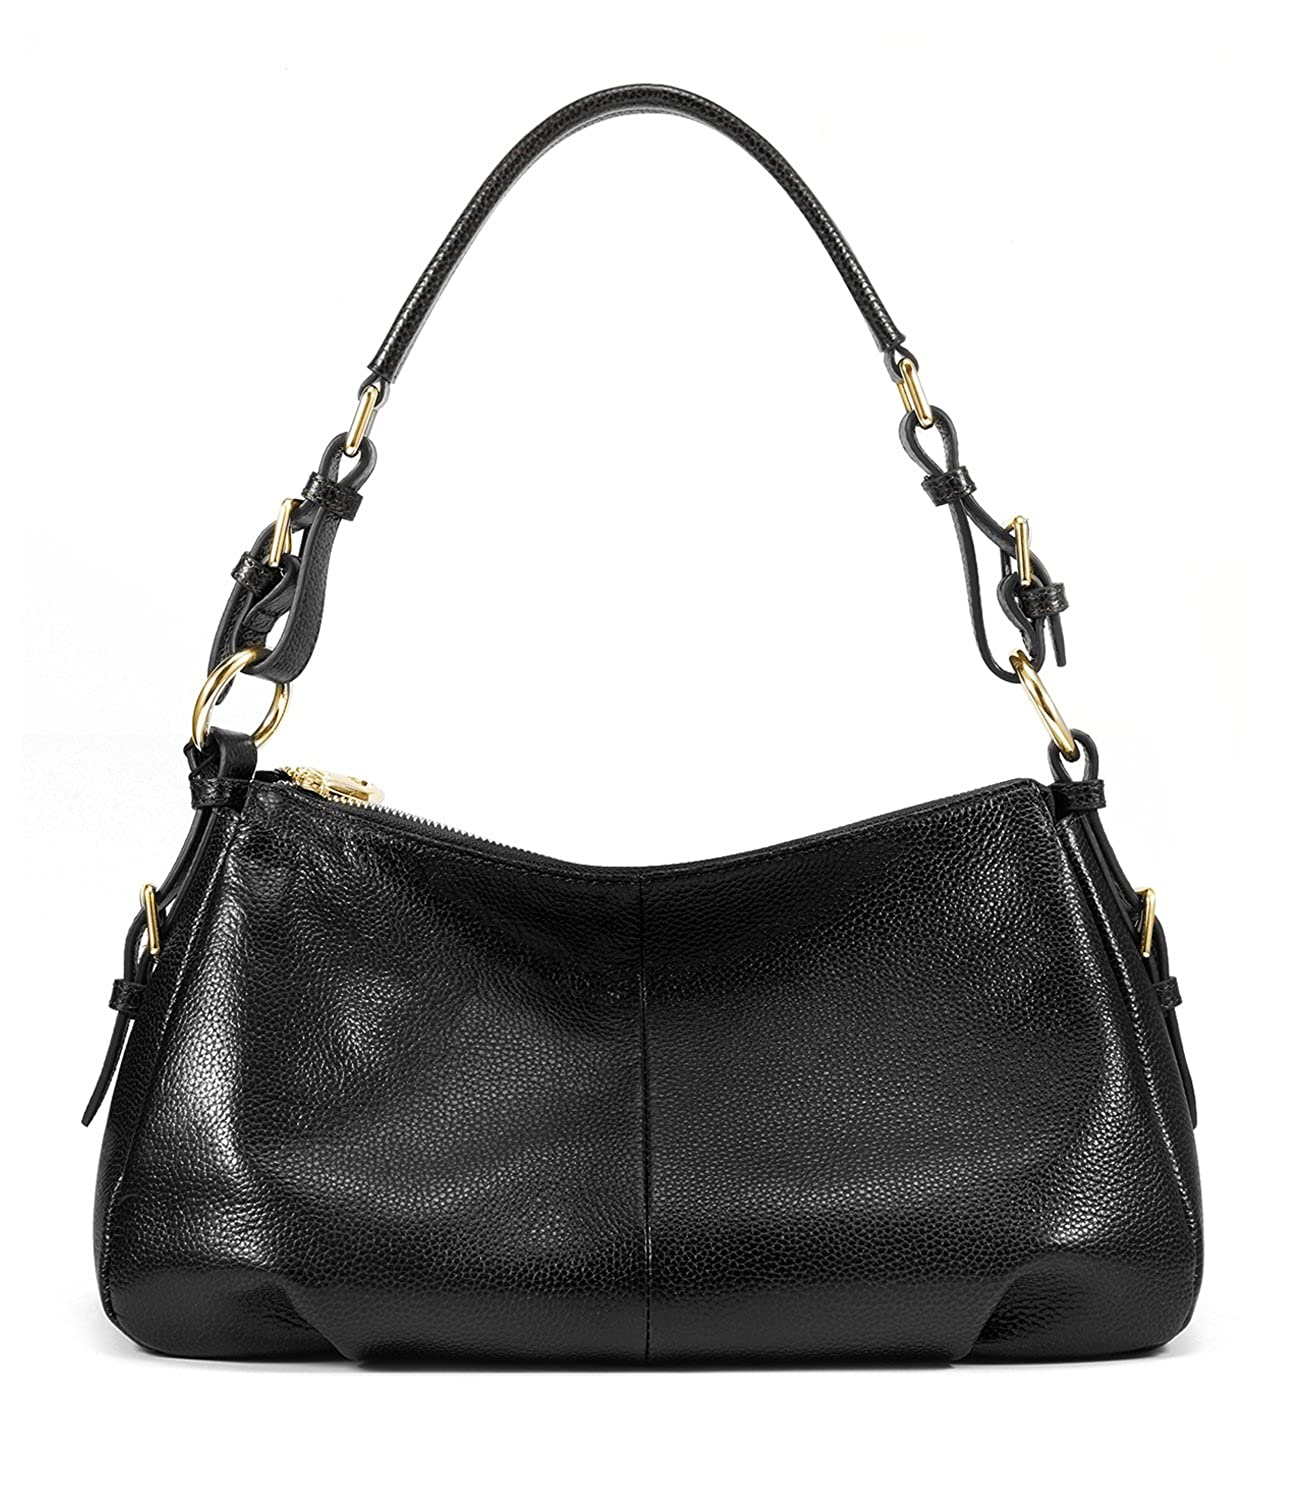 0b4d9be3bf Amazon.com  Kattee Ladies  Vintage Leather Hobo Shoulder Handbag Black   Clothing